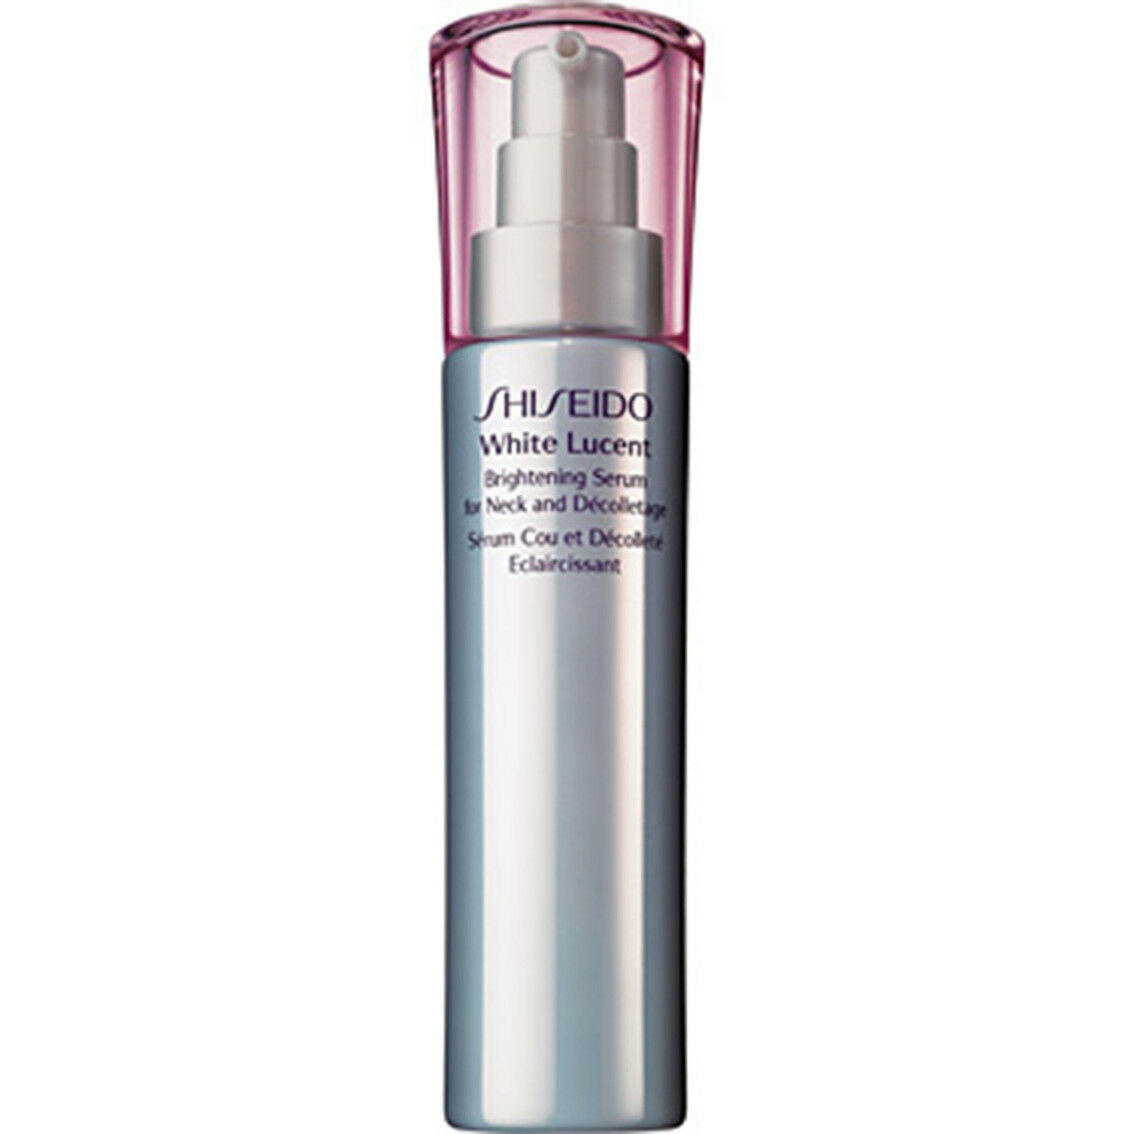 Primary image for Shiseido White Lucent Brightening Serum for Neck and Decolletage BNIB